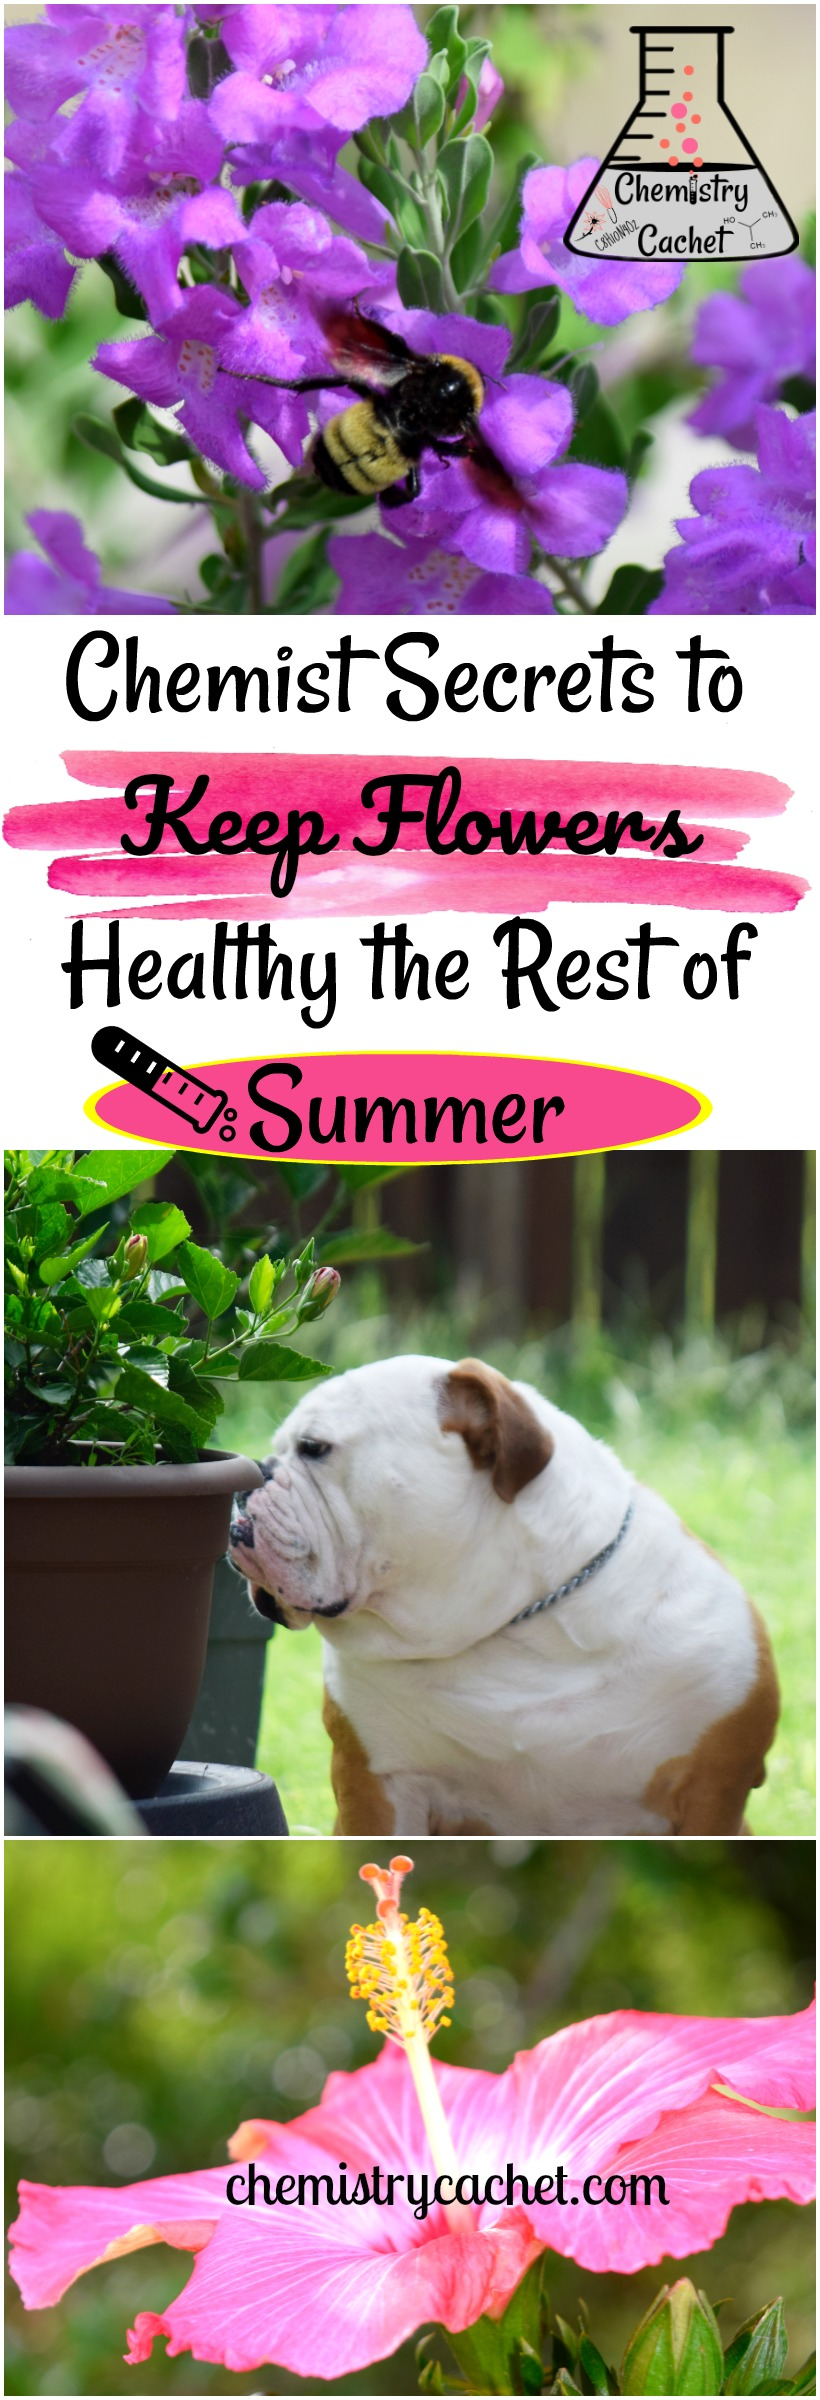 Do your flowers look bad in the summer Here are Chemist Secrets to Keep Flowers Healthy the rest of this summer!! Awesome summer tips on chemistrycachet.com